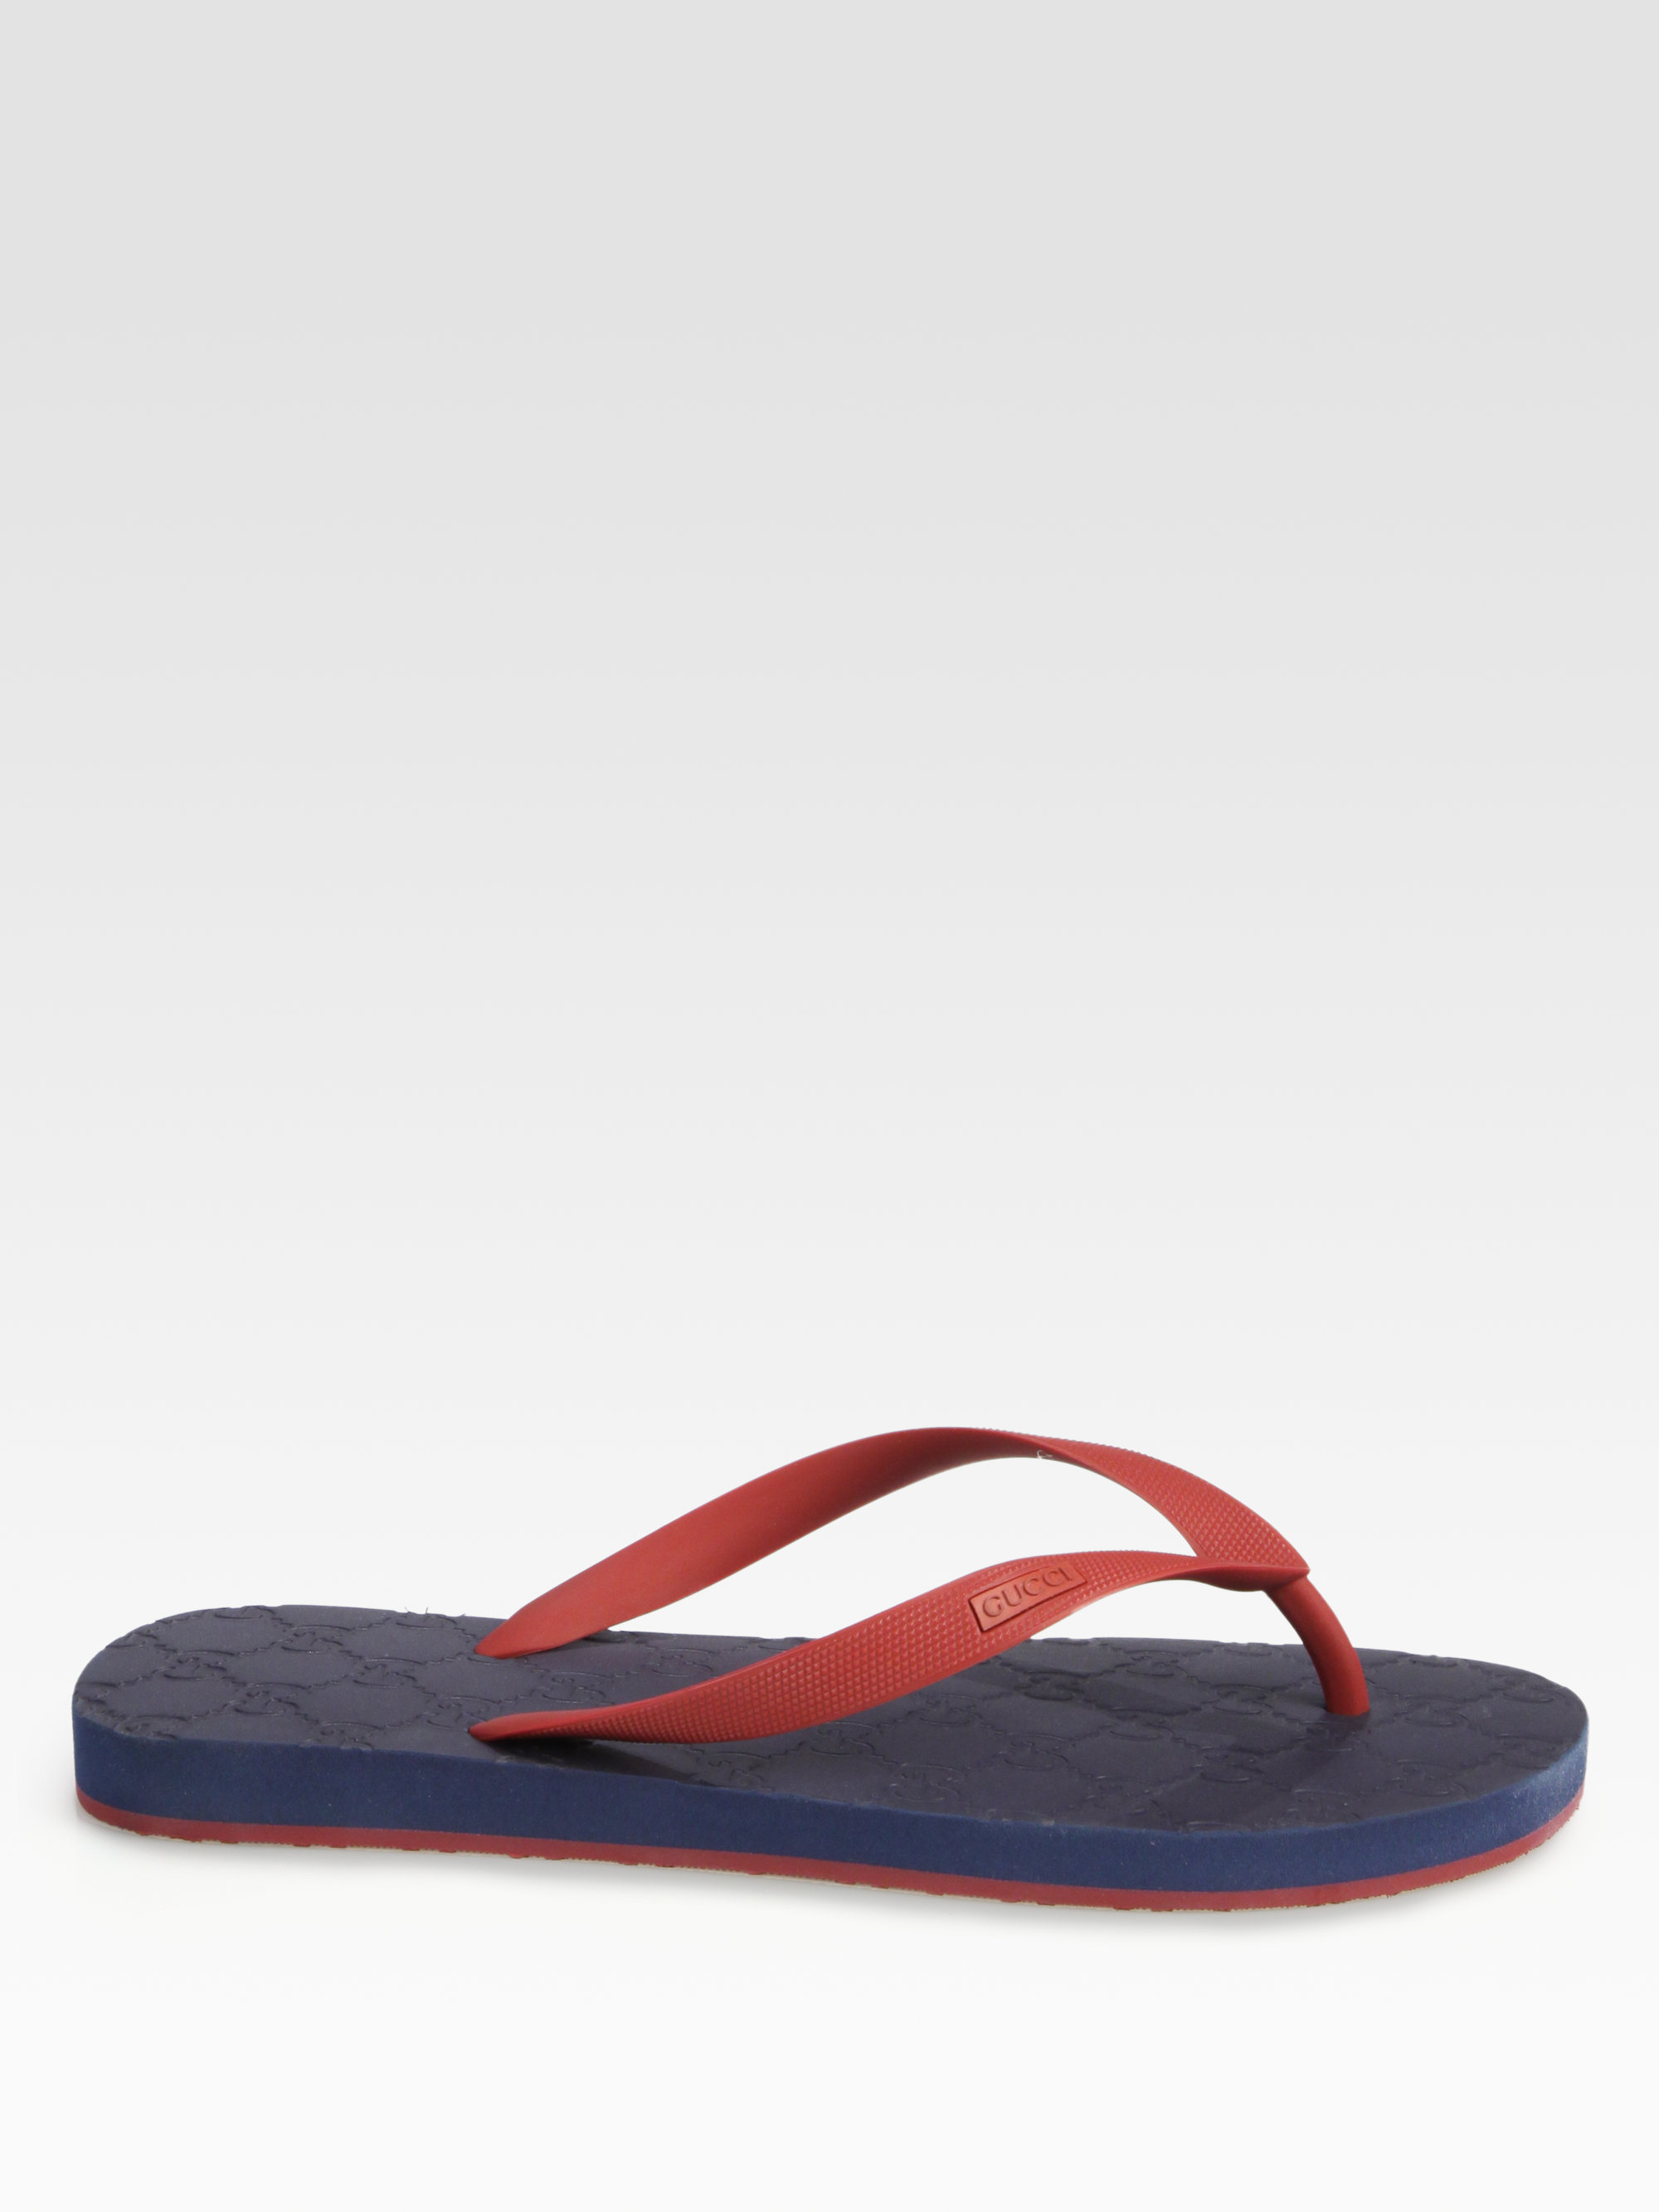 fb9810e88e0 Gucci Bedlam Logo Thong Sandal in Blue for Men - Lyst